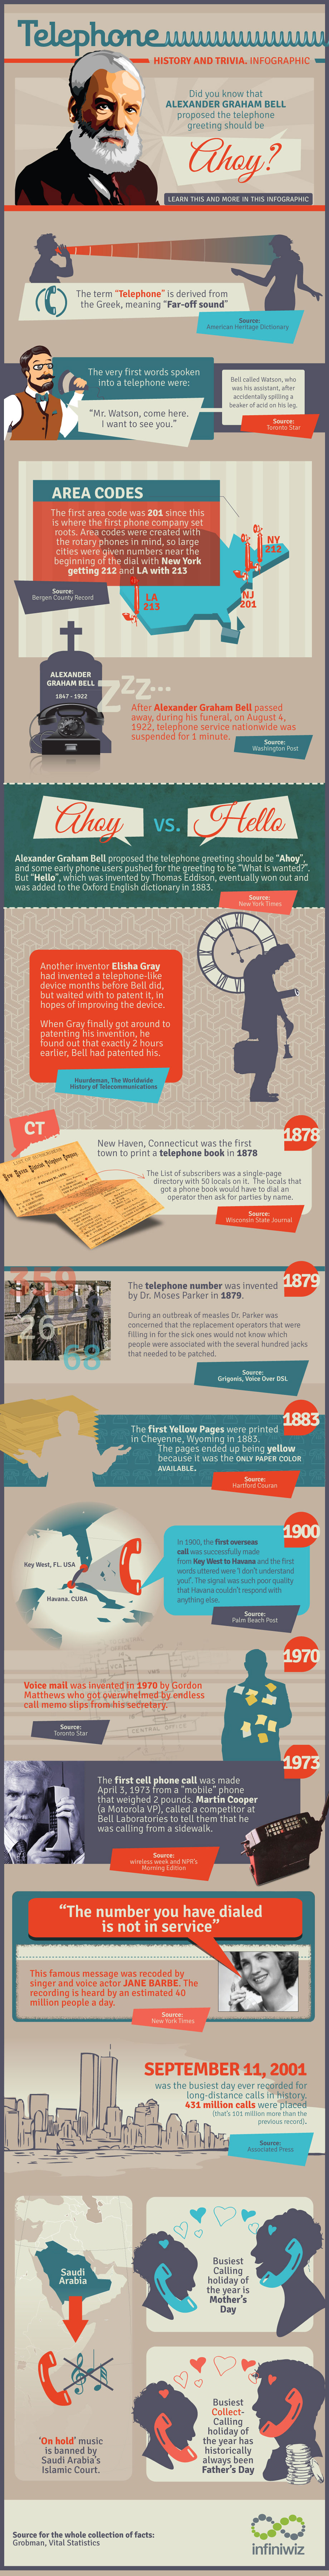 Telephone History and Trivia by Infiniwiz